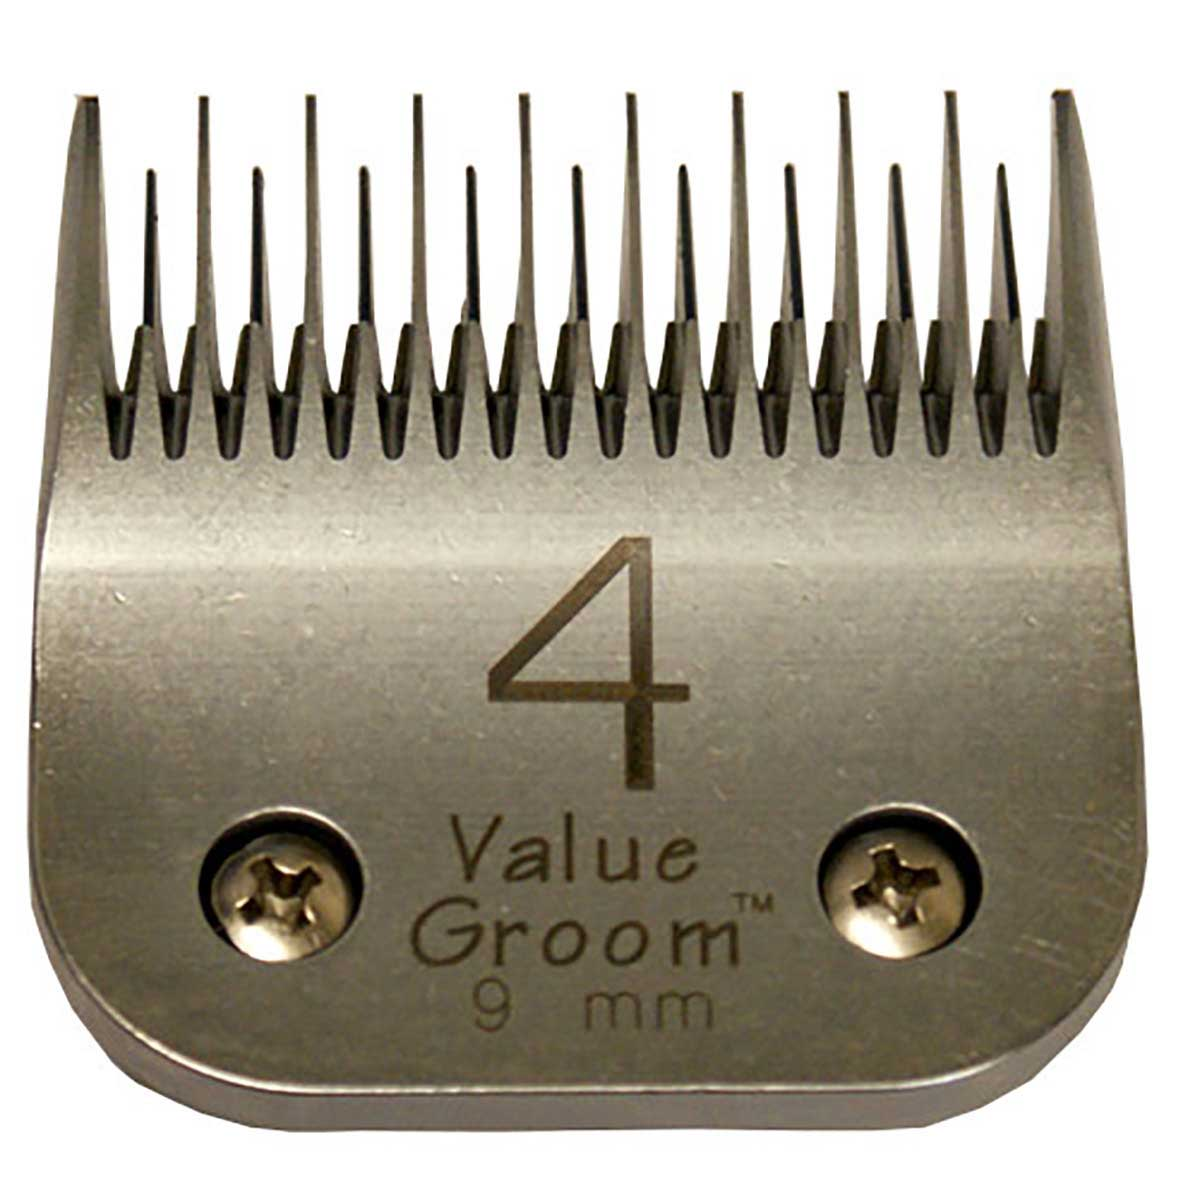 Value Groom #4 Conventional Blade Skip Tooth 3/8 inch 9 mm